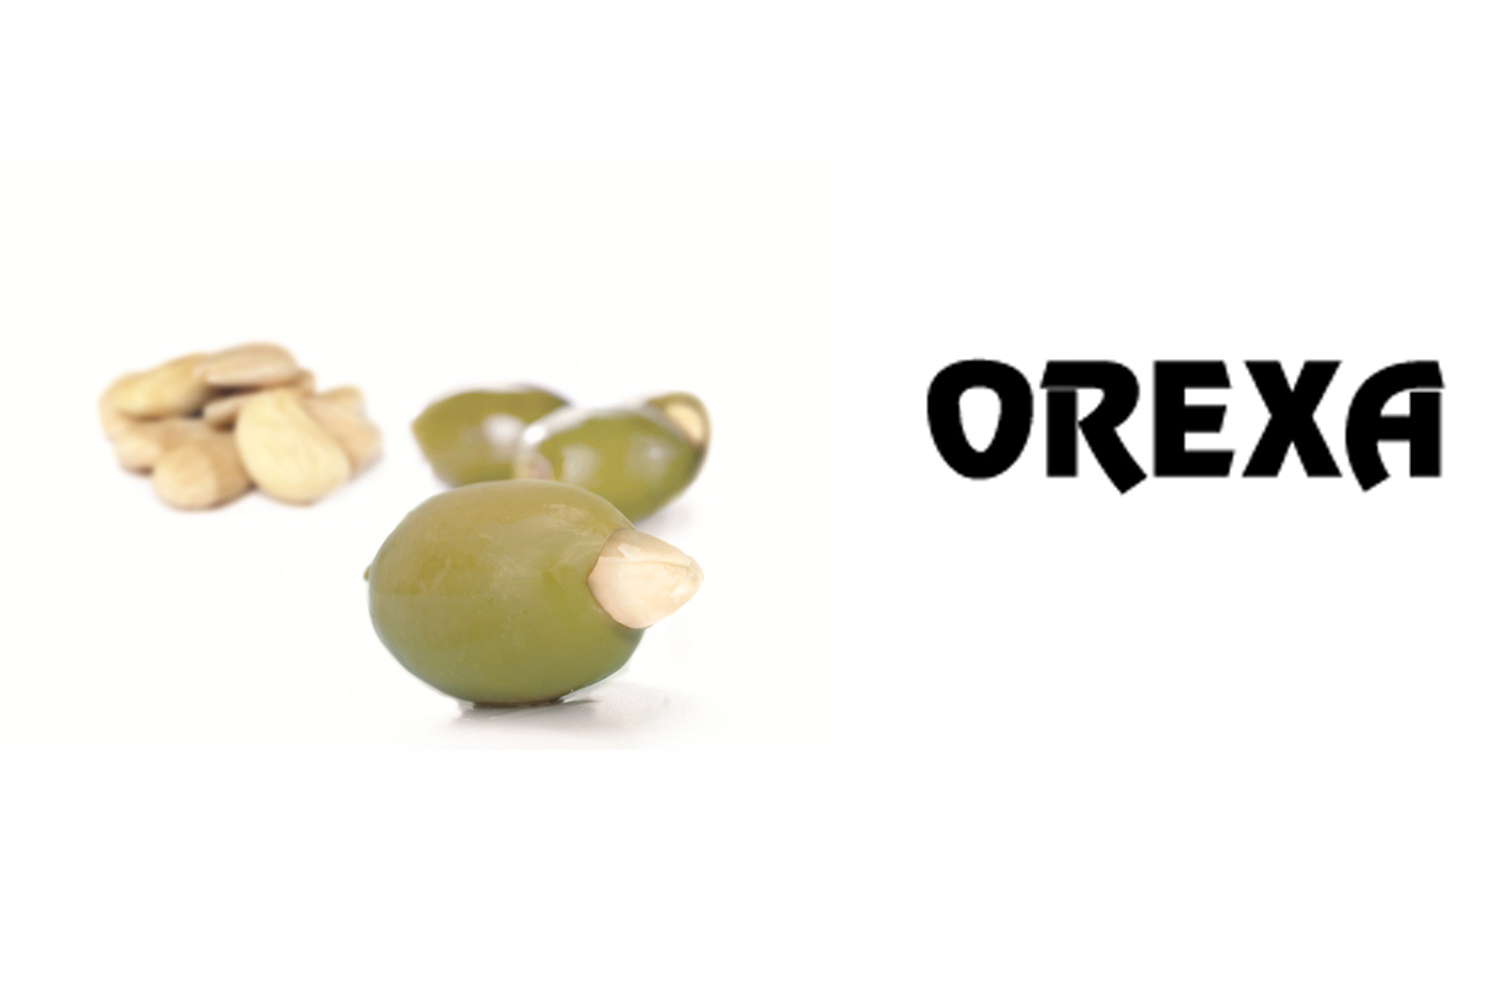 Orexa green olives stuffed with almond 13kg